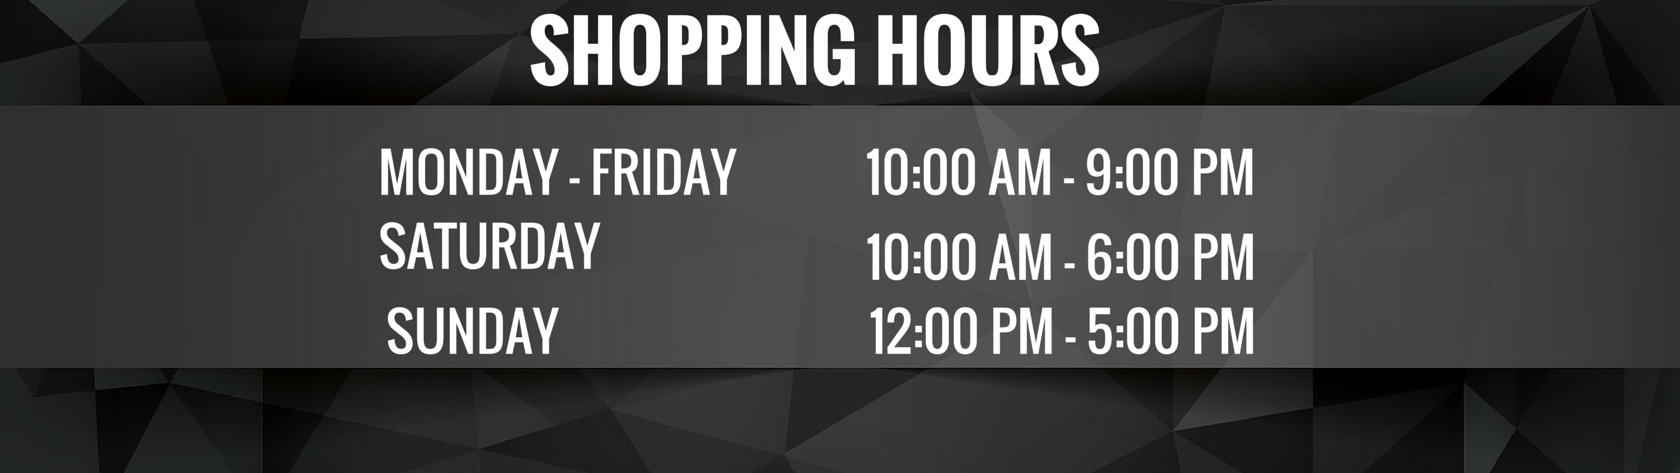 SHOPPING-HOURS-1